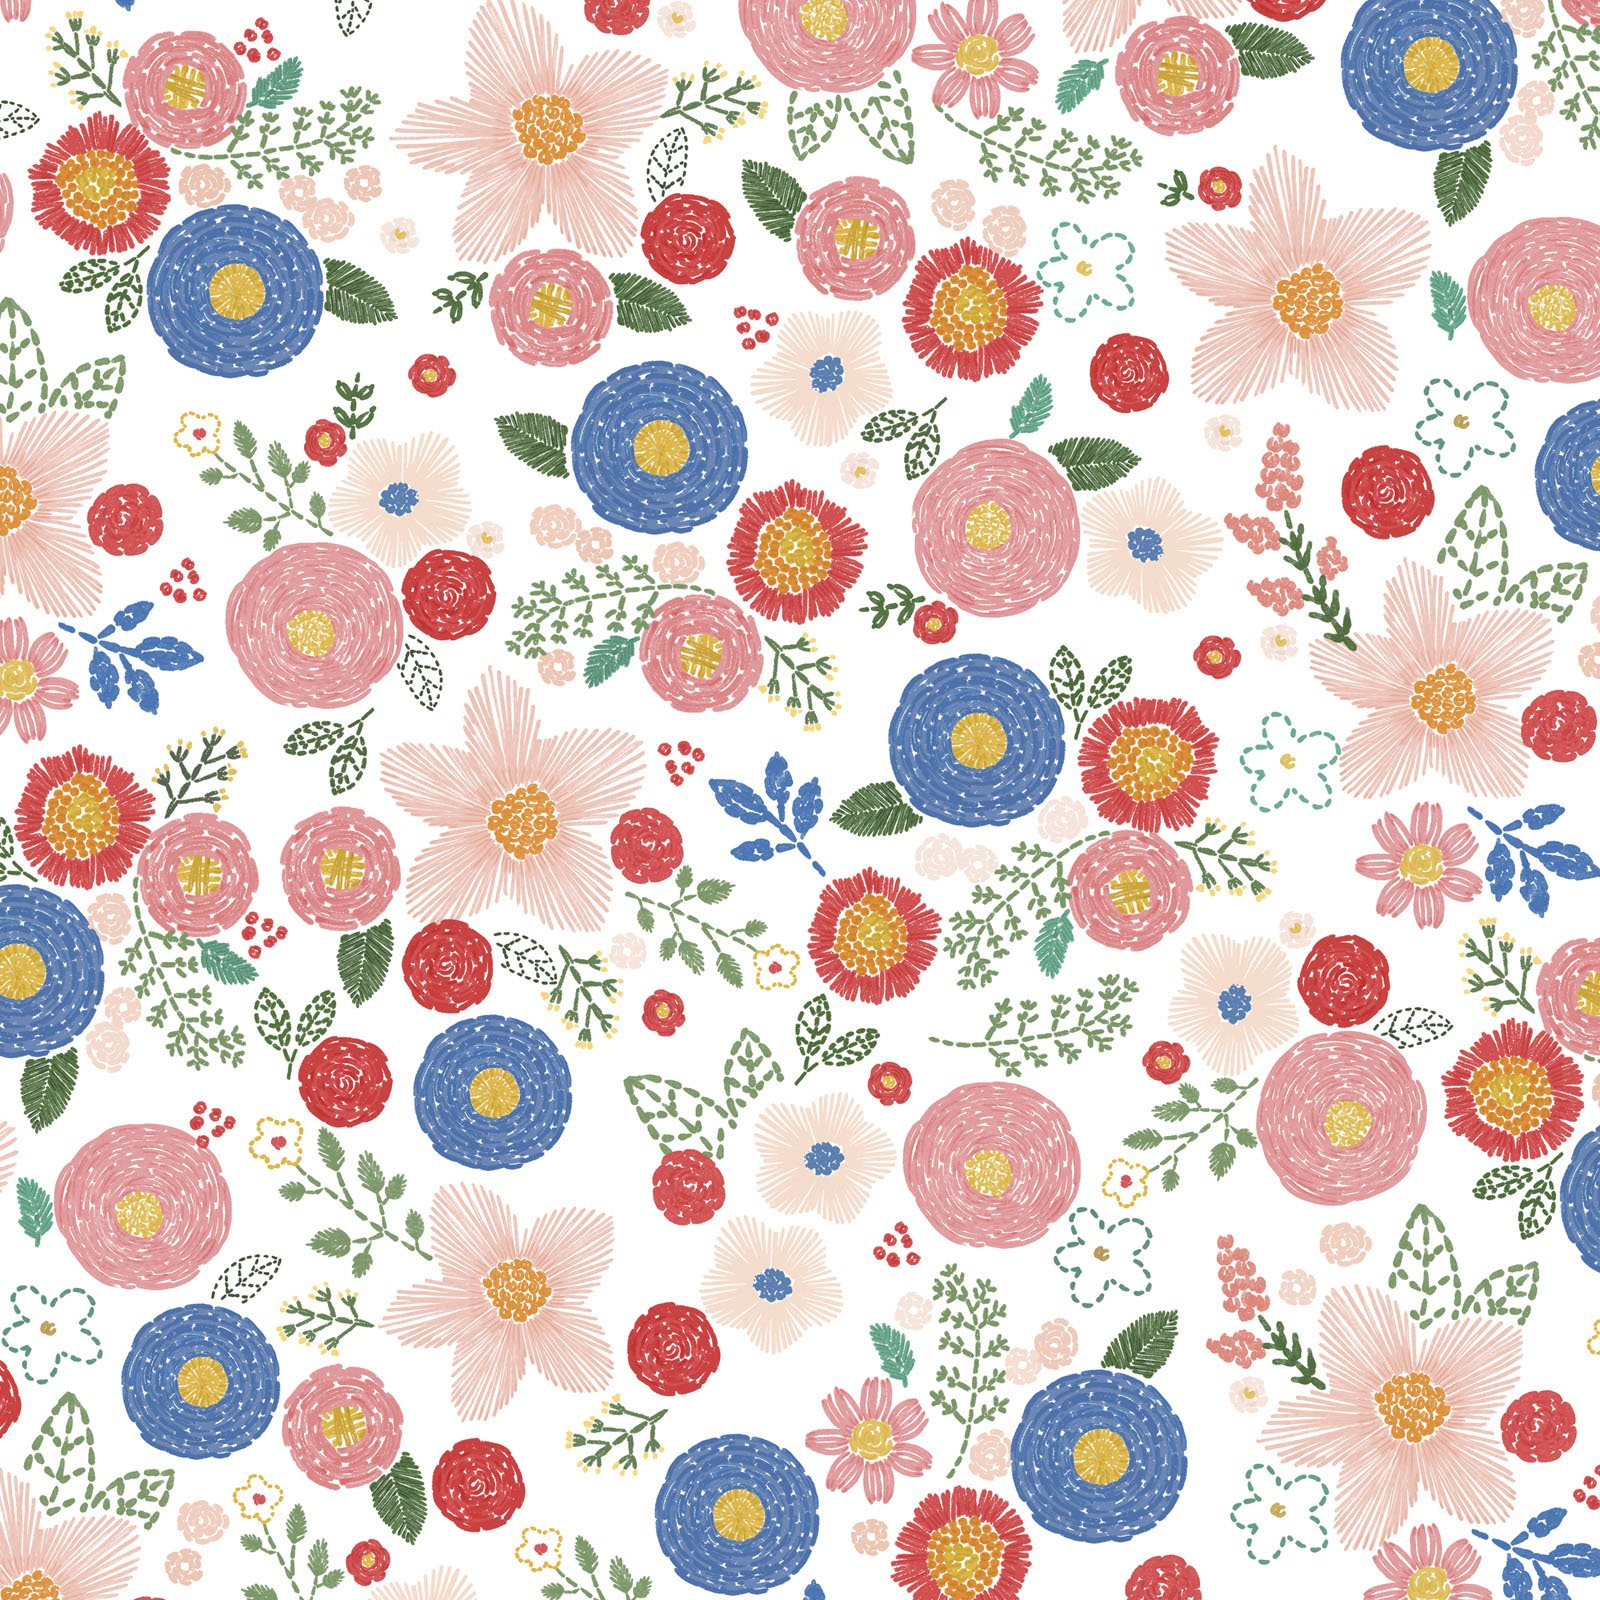 SWLO-4655 MU - STITCHED WITH LOVE BY LONI HARRIS STITCHED FLORAL MULTI - ARRIVING IN MARCH 2022